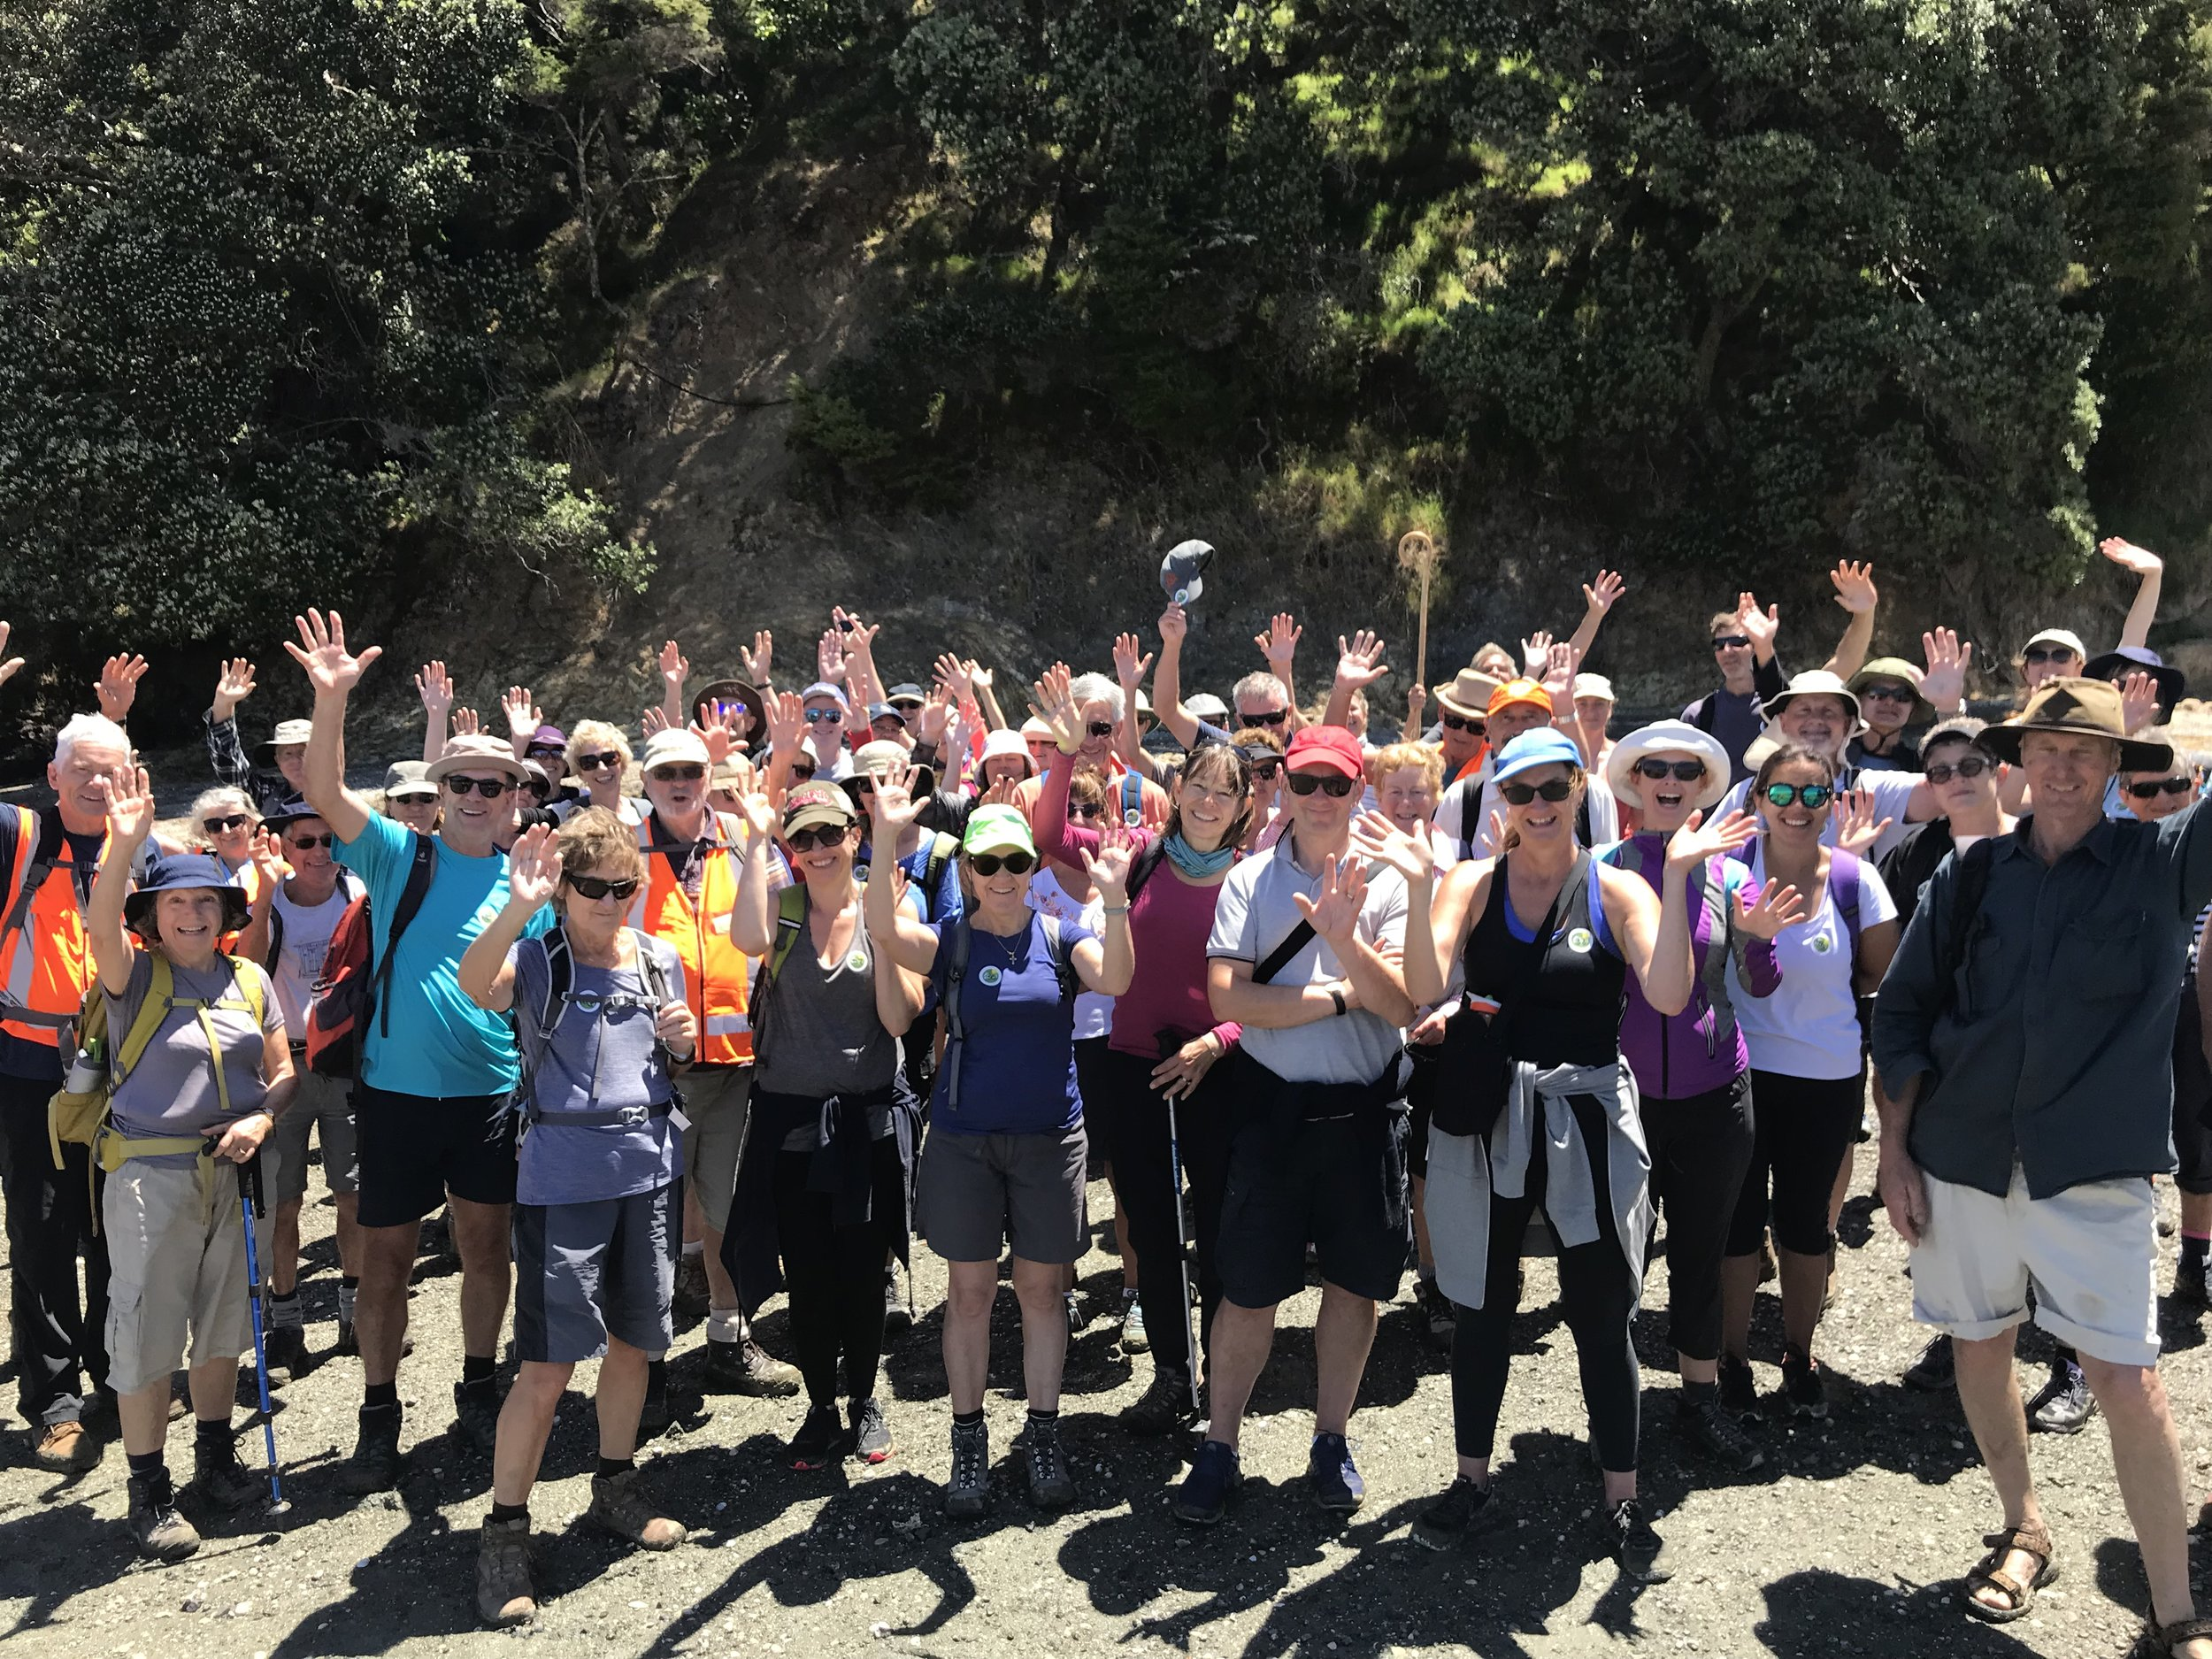 Waiheke Walking Festival - The Waiheke Walking Festival is a free event held in November each year across Waiheke Island, on private and public land.Volunteers would guide and be a support team for walks, talk to visitors to Waiheke, liaise with local landowners, have fun! There will also be opportunities to help at events with event logistics, serving food and organising large groups of people.Volunteers are welcome to give as much or as little time as they have available, and would enjoy being outdoors, are happy to walk in rain or sunshine and would feel comfortable saying hello and having a chat with people they have just met. We offer training in all aspects of the role including health and safety training.Contact: Nicola Bowman / nicola@waihekewalkingfestival.org / 027 633 3480Website: https://waihekewalkingfestival.org